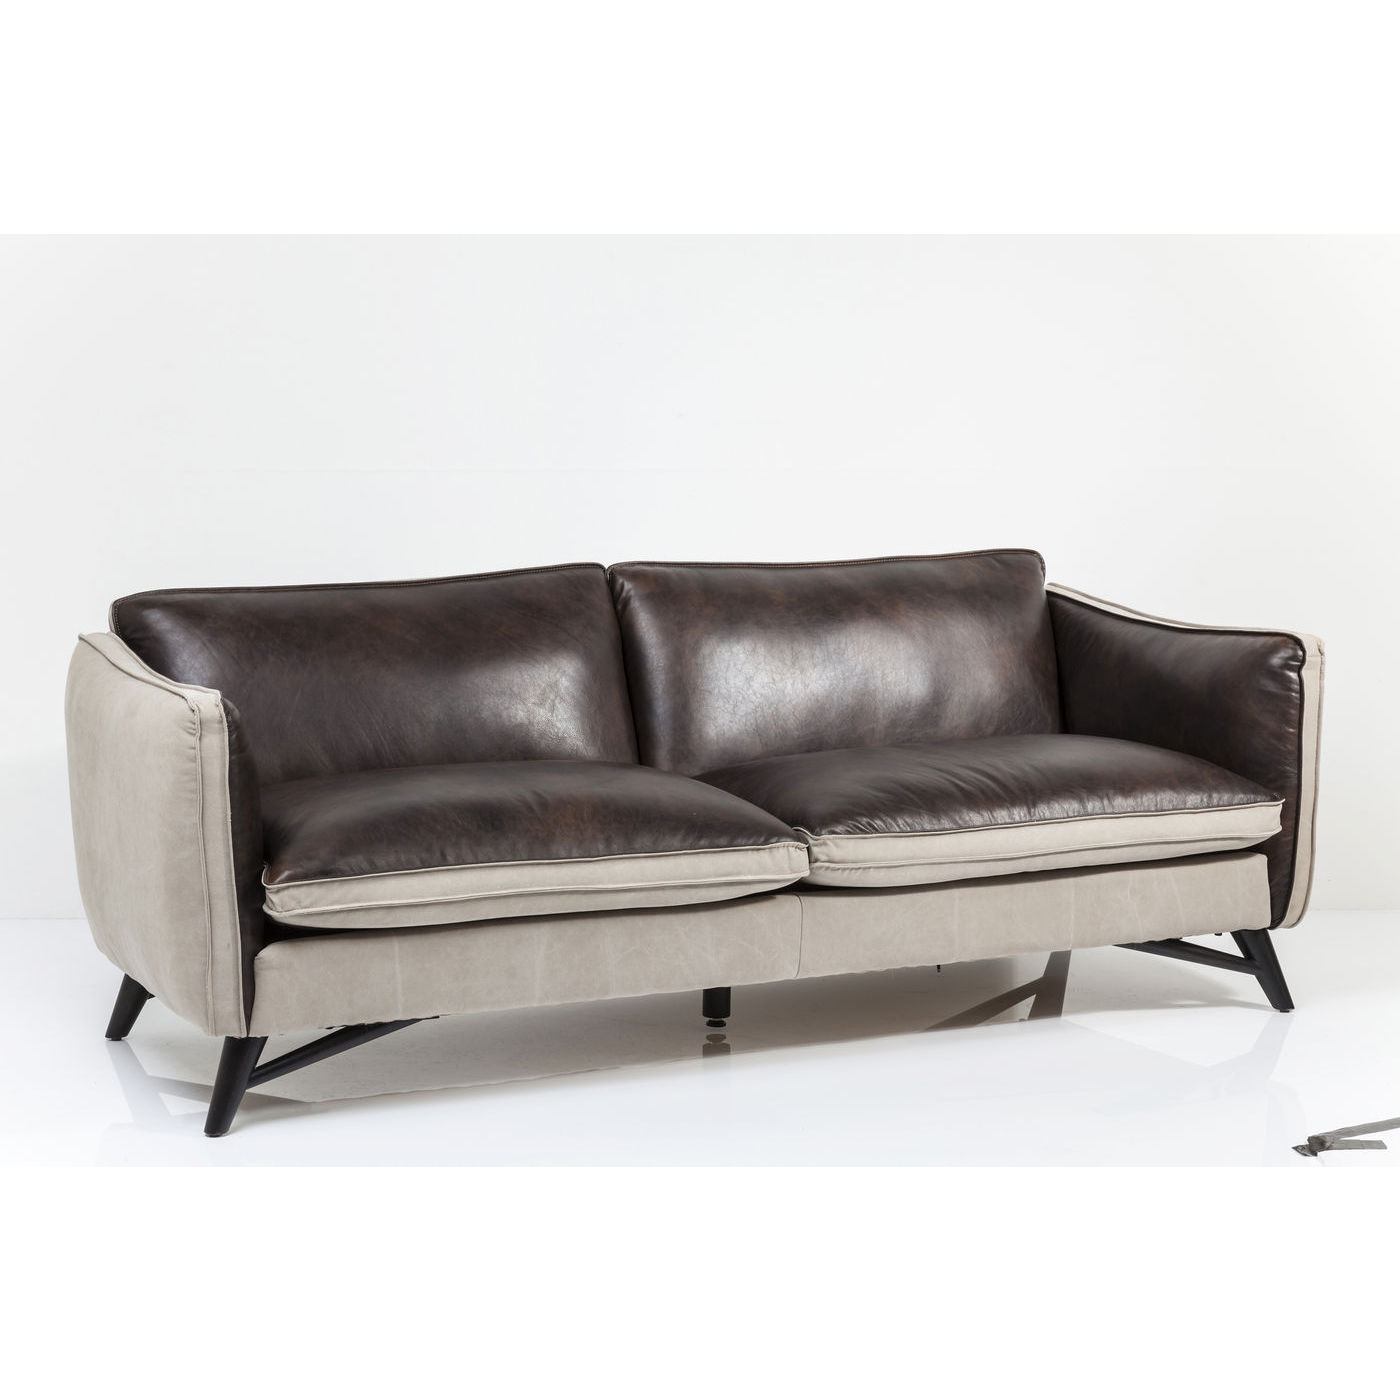 fashionista sofa med koskind og l rred stilfuld og flot. Black Bedroom Furniture Sets. Home Design Ideas